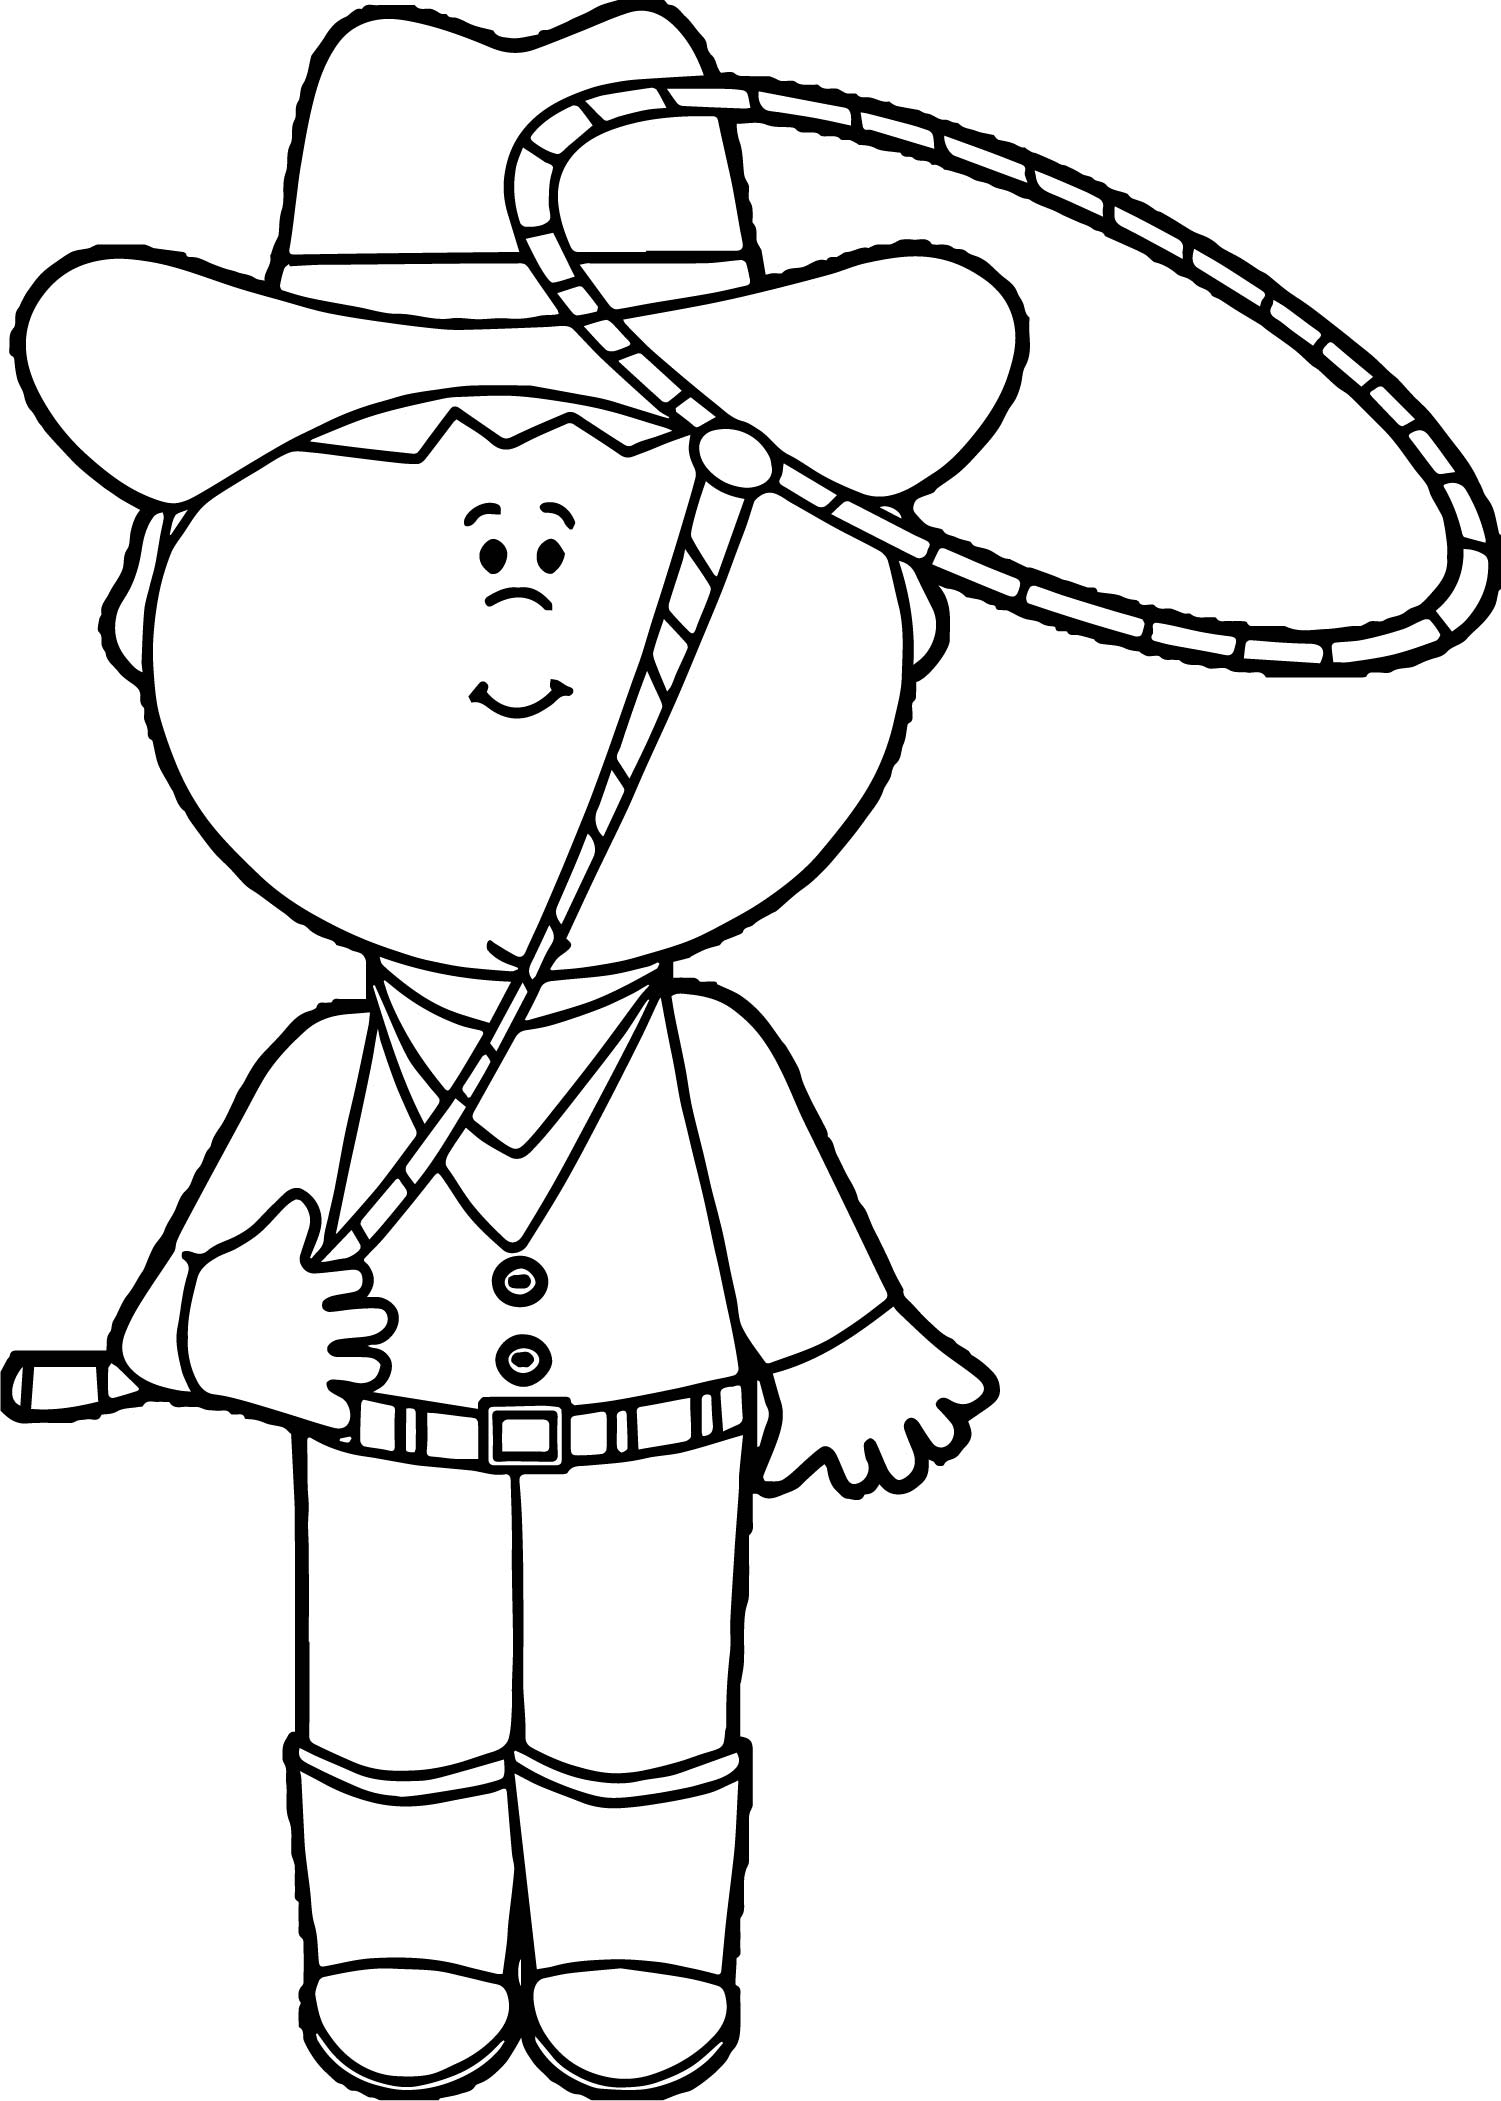 Cowboy turn rope coloring page for Turn an image into a coloring page